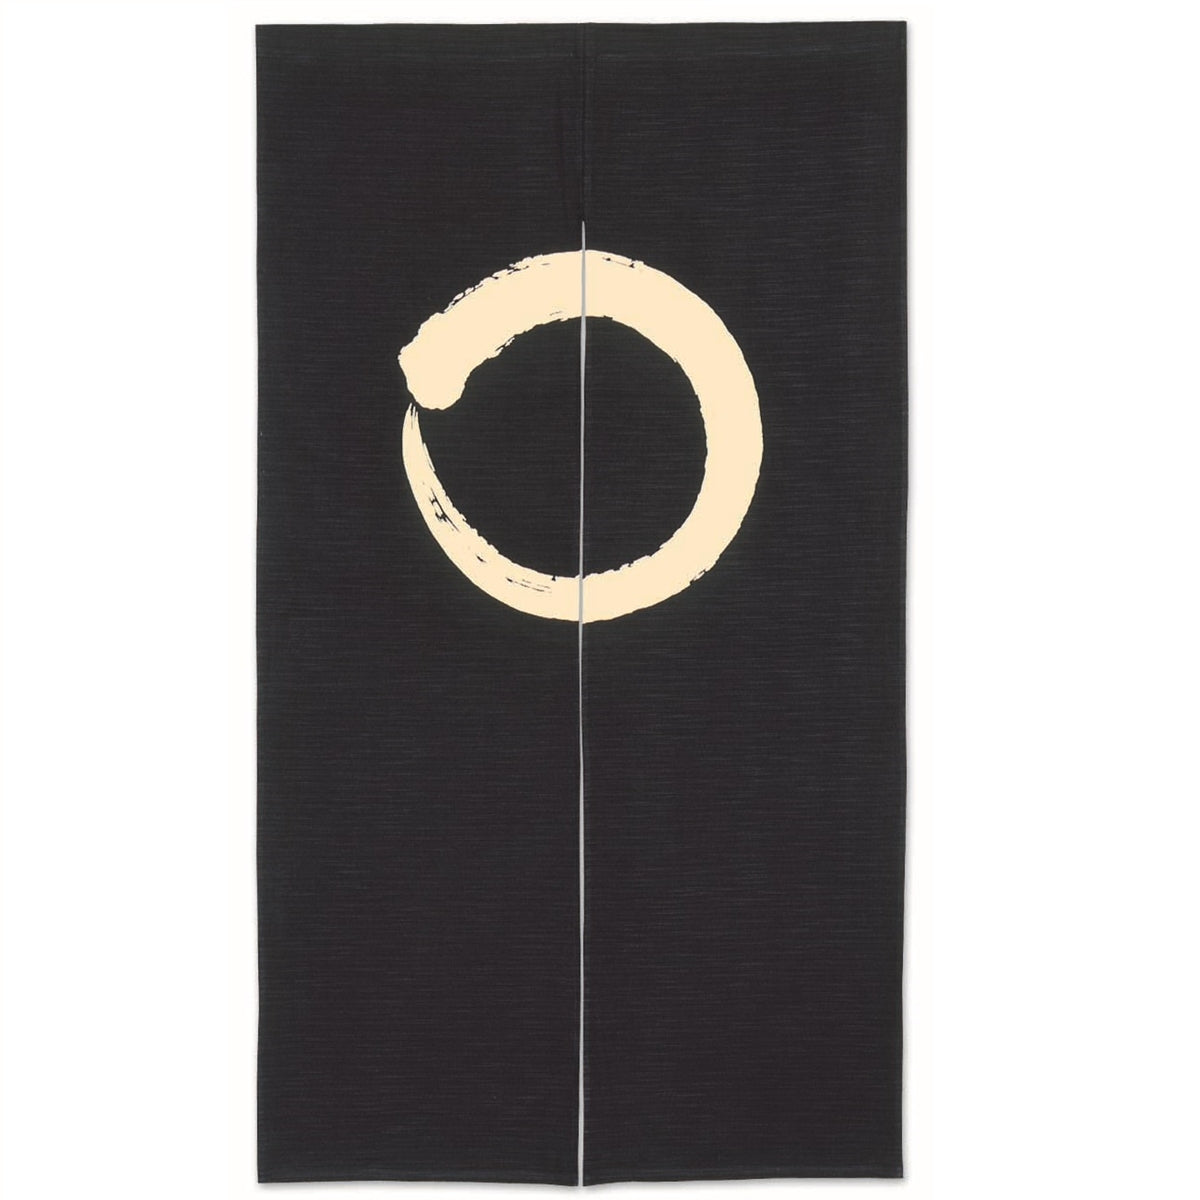 Noren Curtain with Circle Design